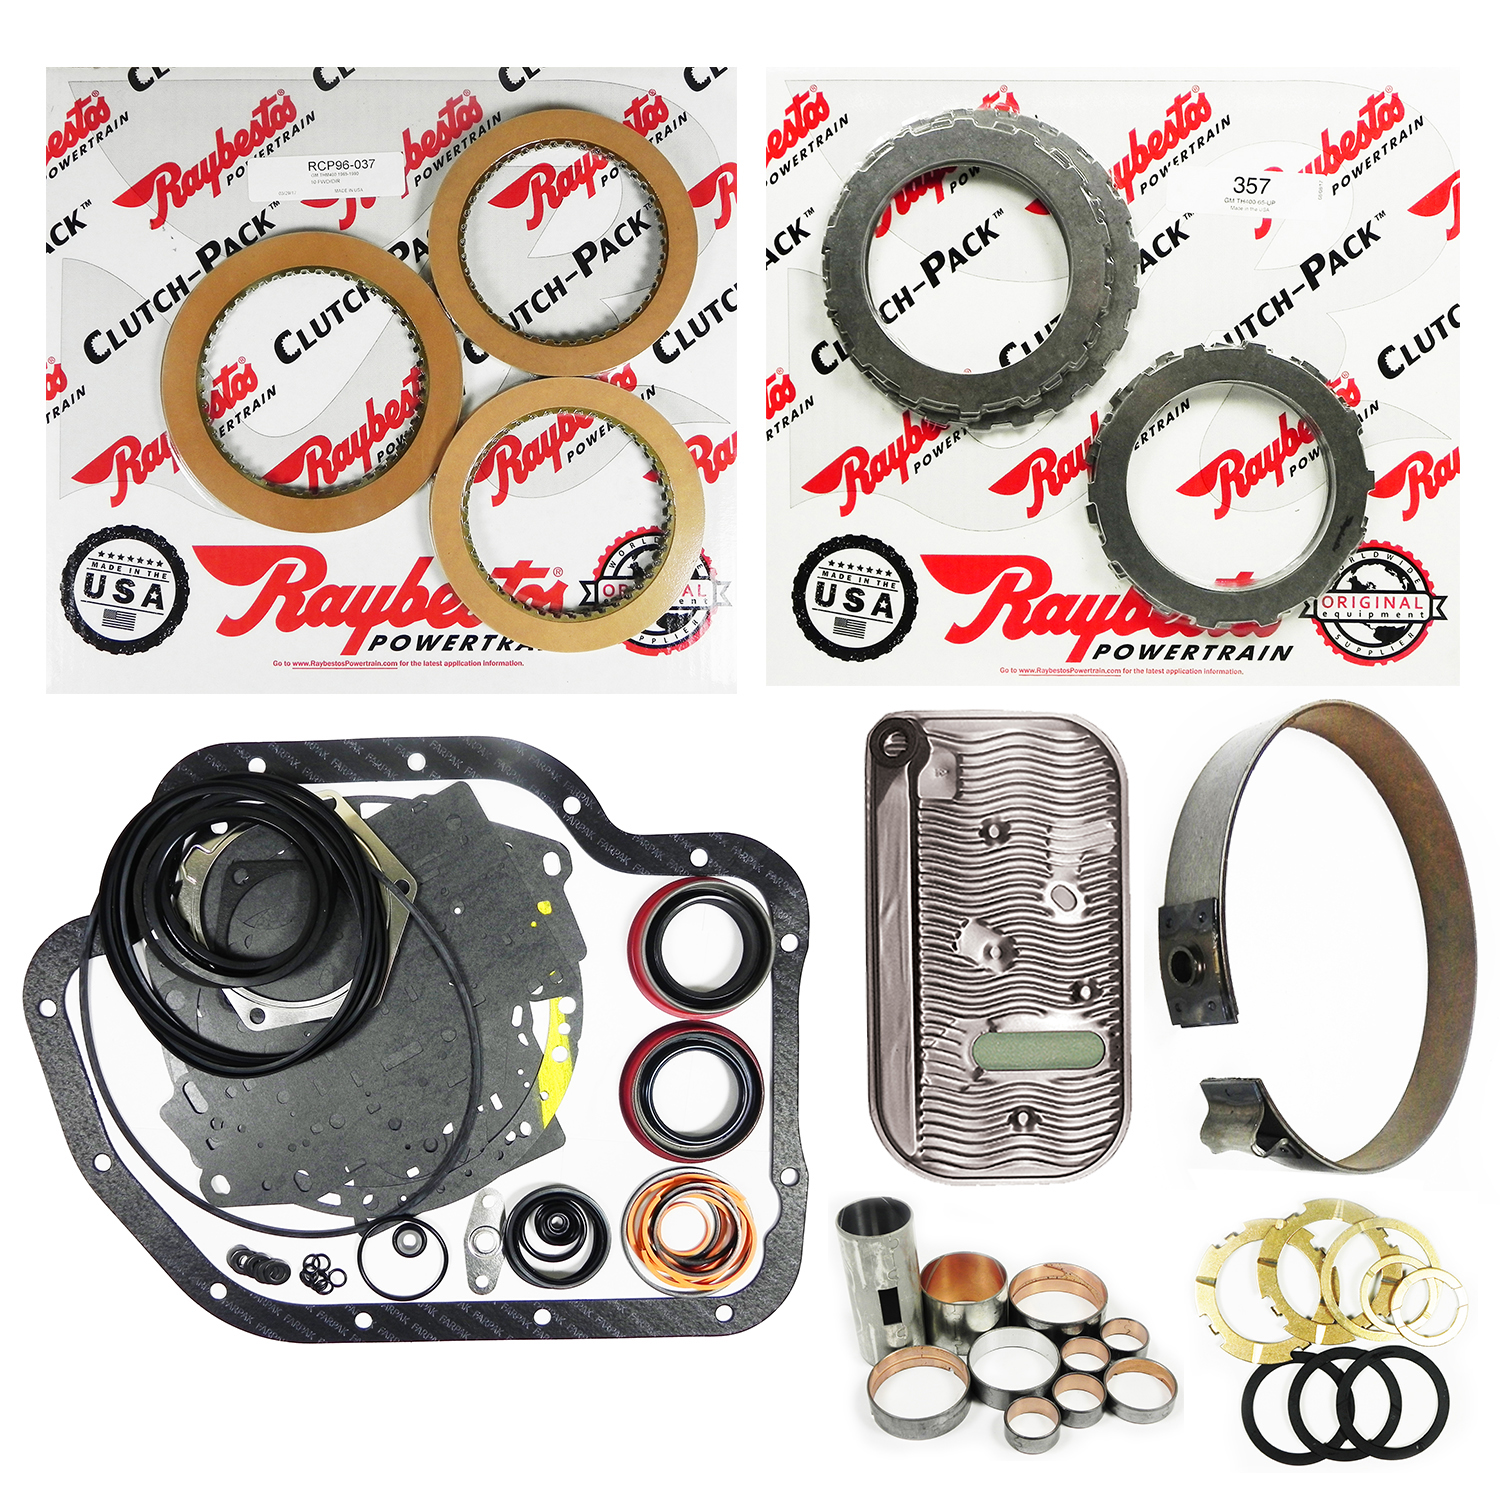 TH400 Super Rebuild Kit